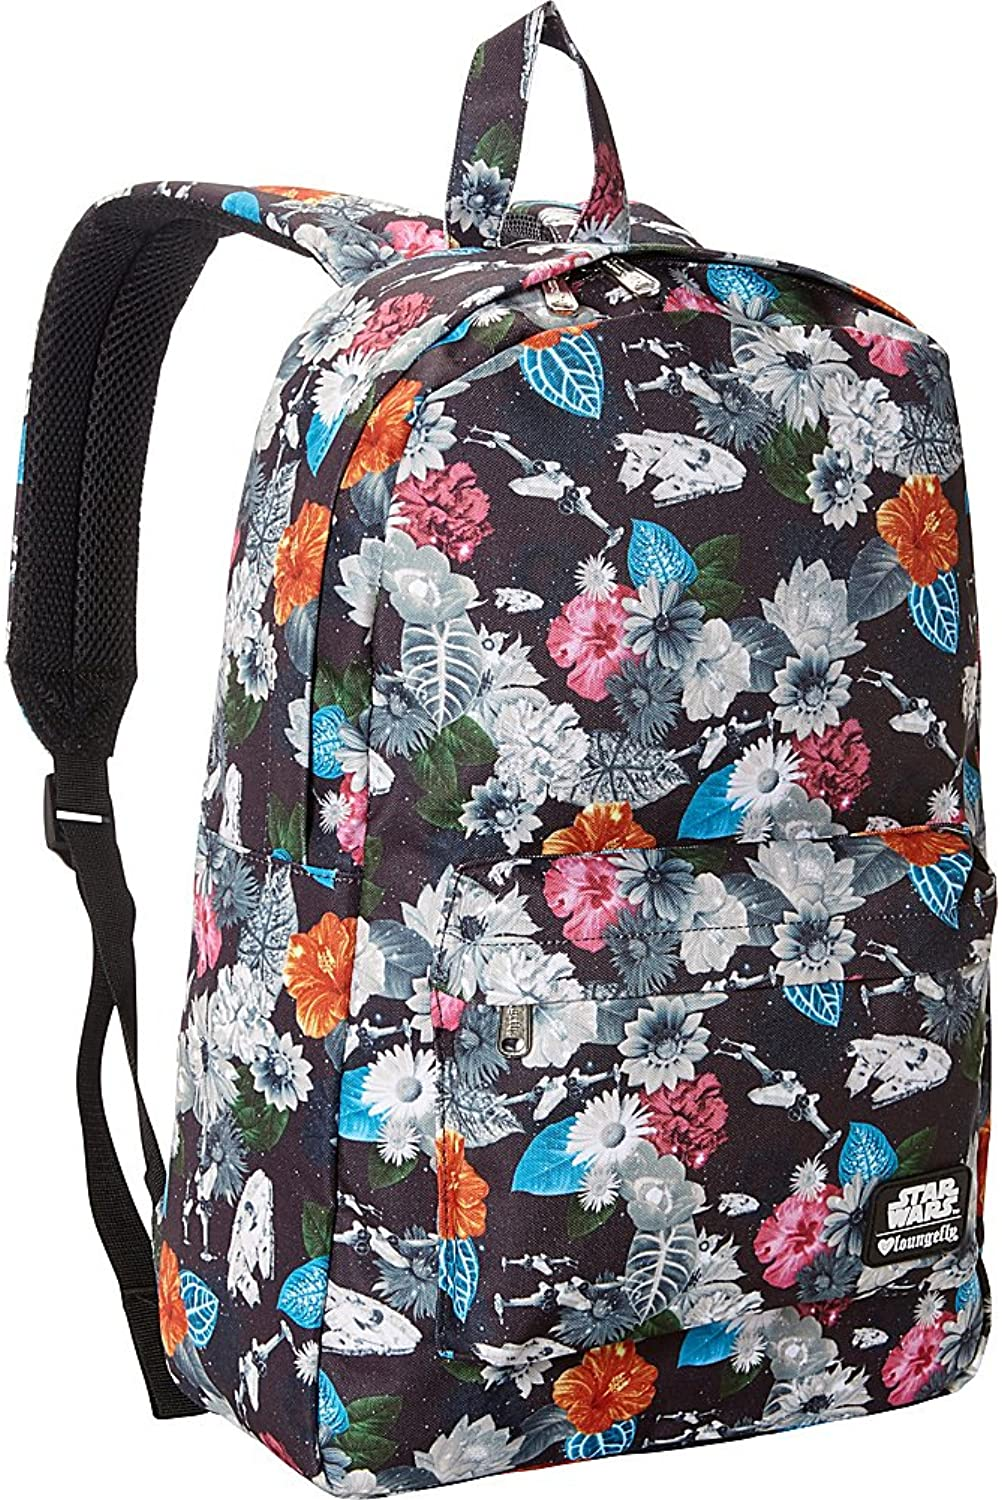 Loungefly Star Wars Floral Print Laptop Backpack (Multi colord)